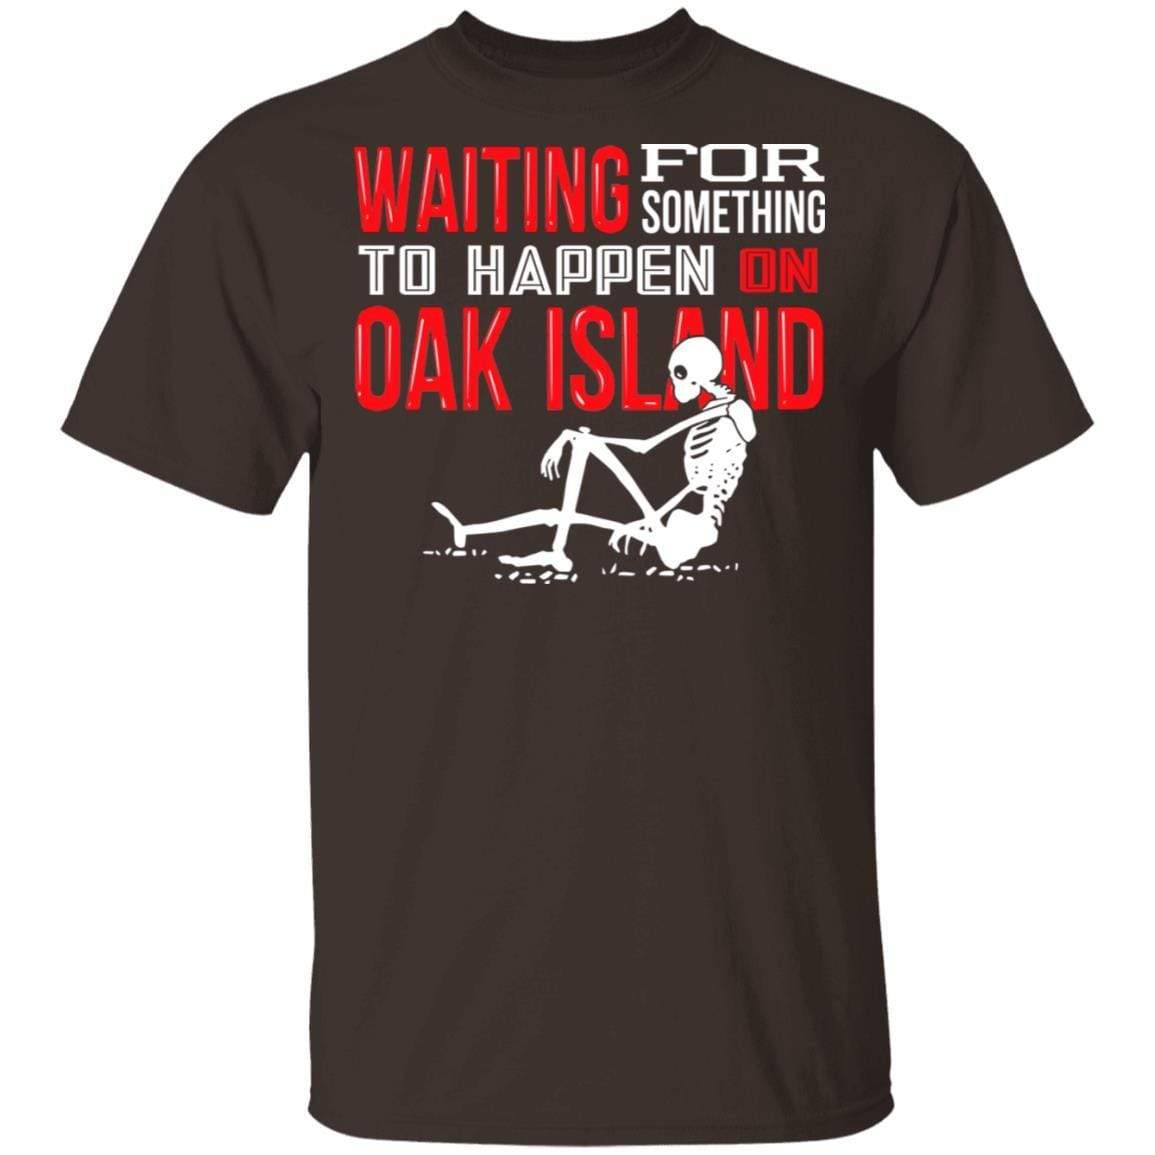 Waiting For Something To Happen On Oak Island T-Shirts, Hoodies 1049-9956-91587324-48152 - Tee Ript